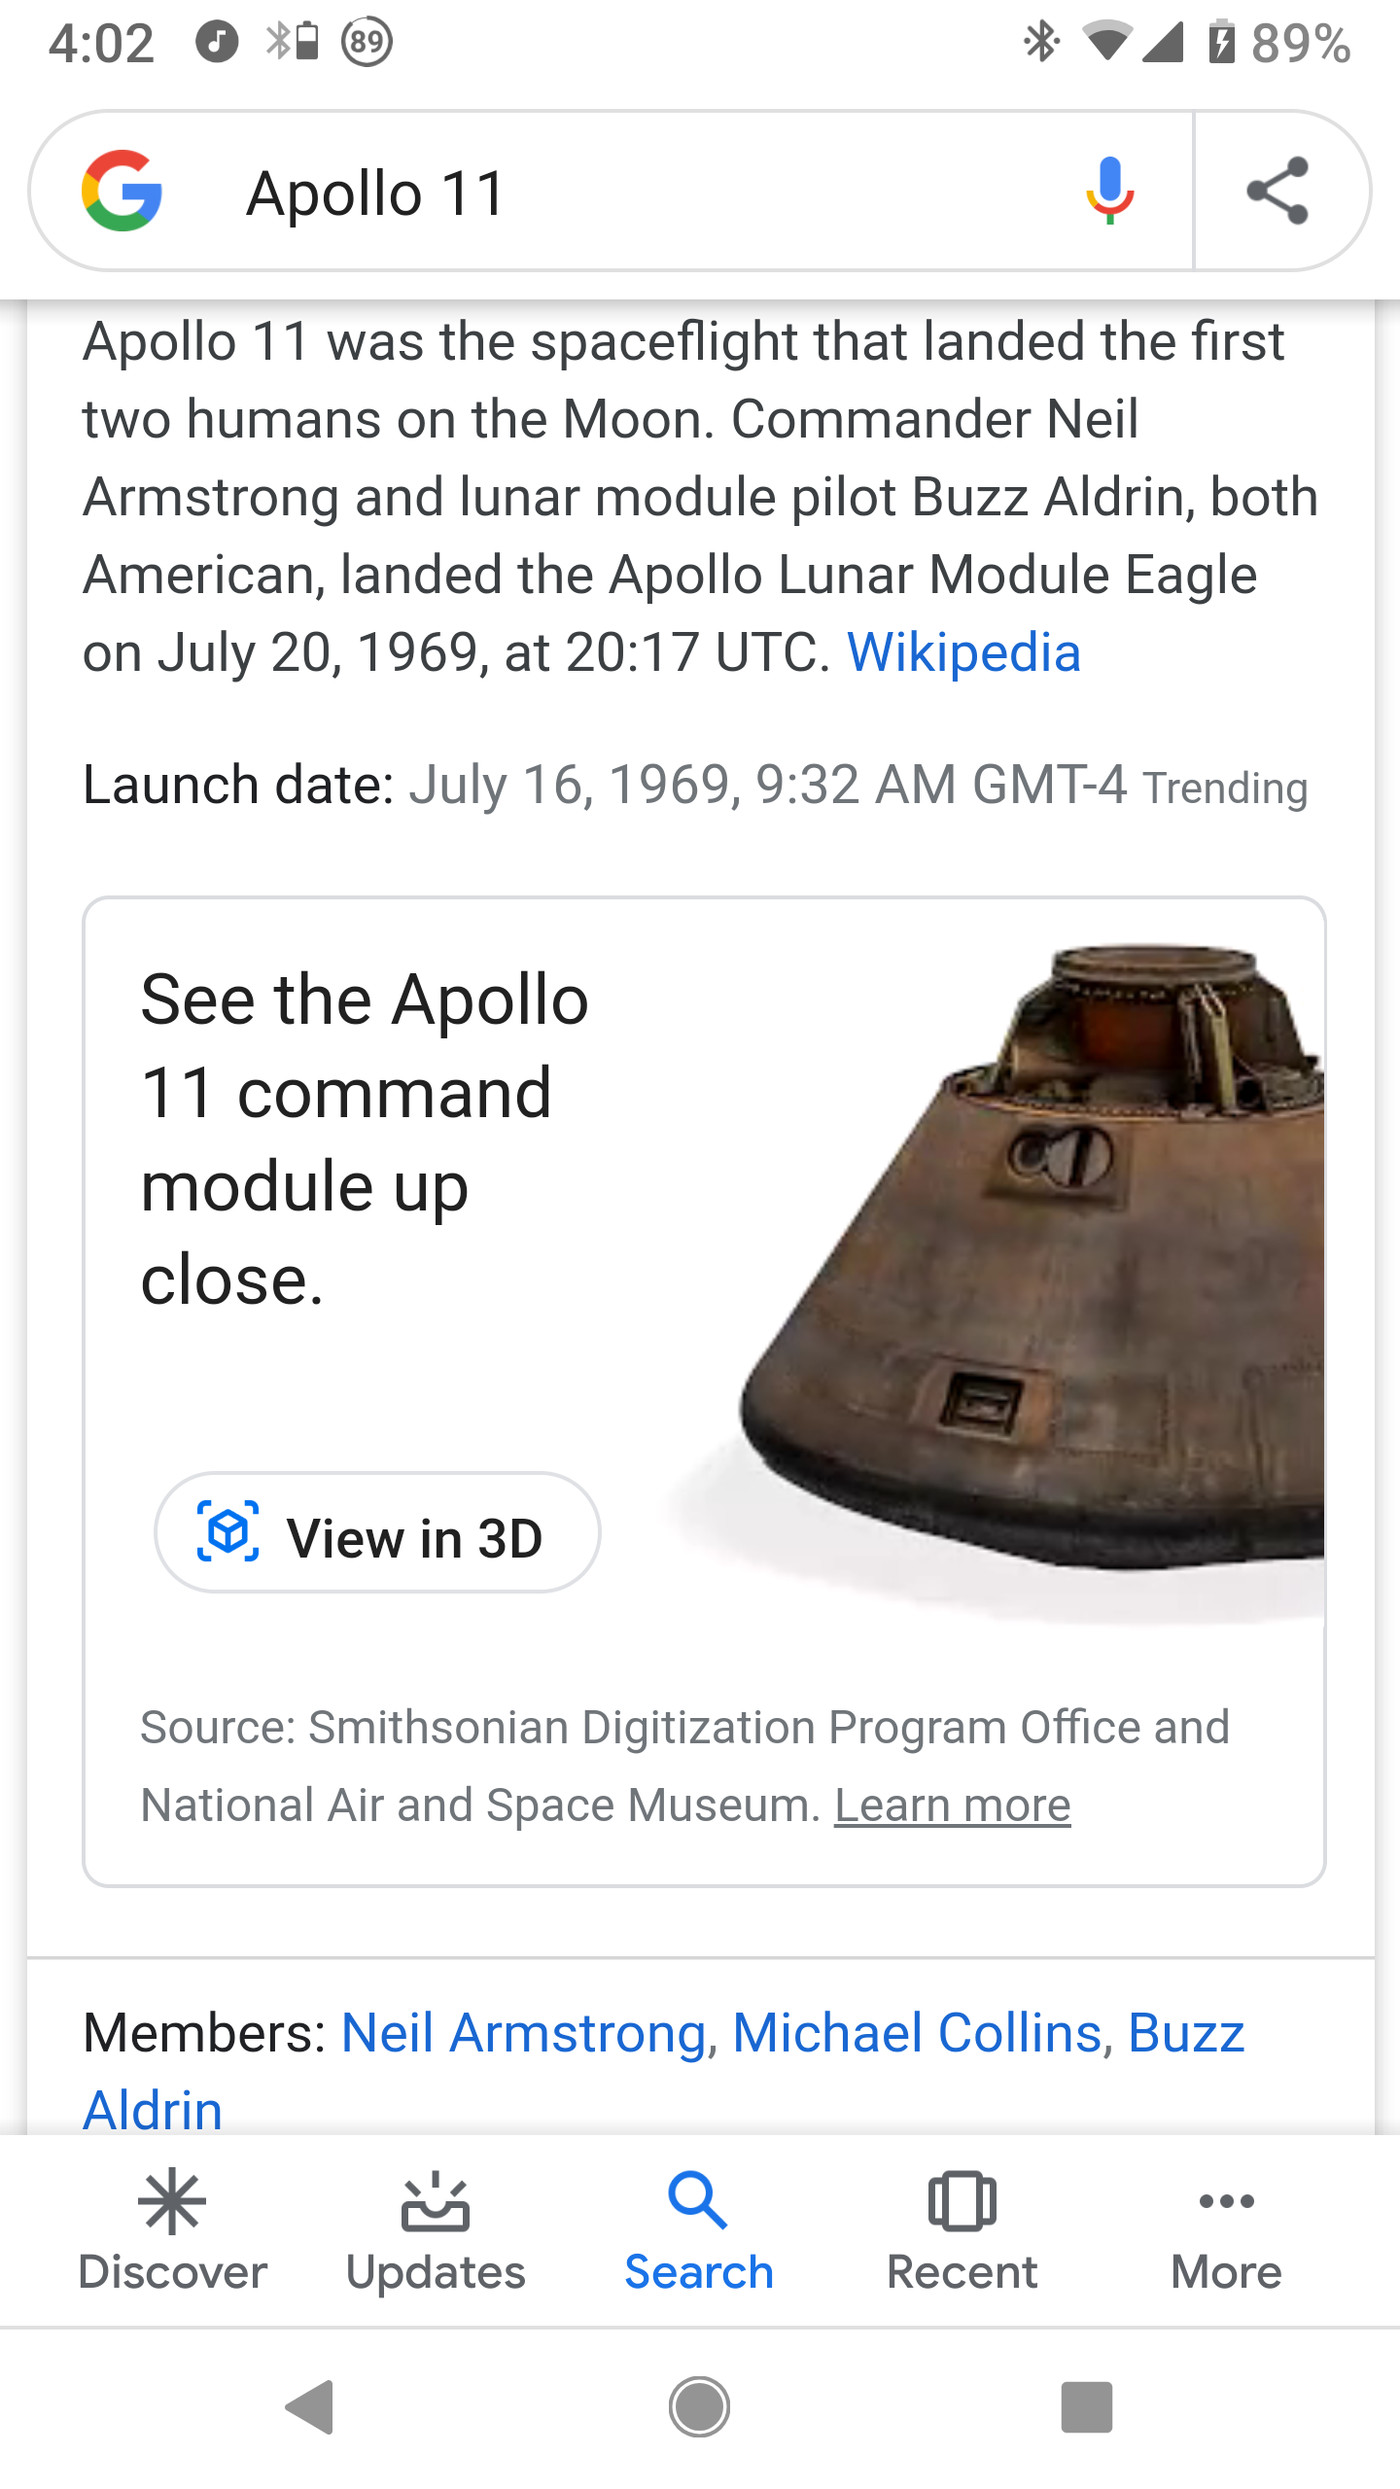 How to celebrate the 50th anniversary of the Apollo 11 Moon